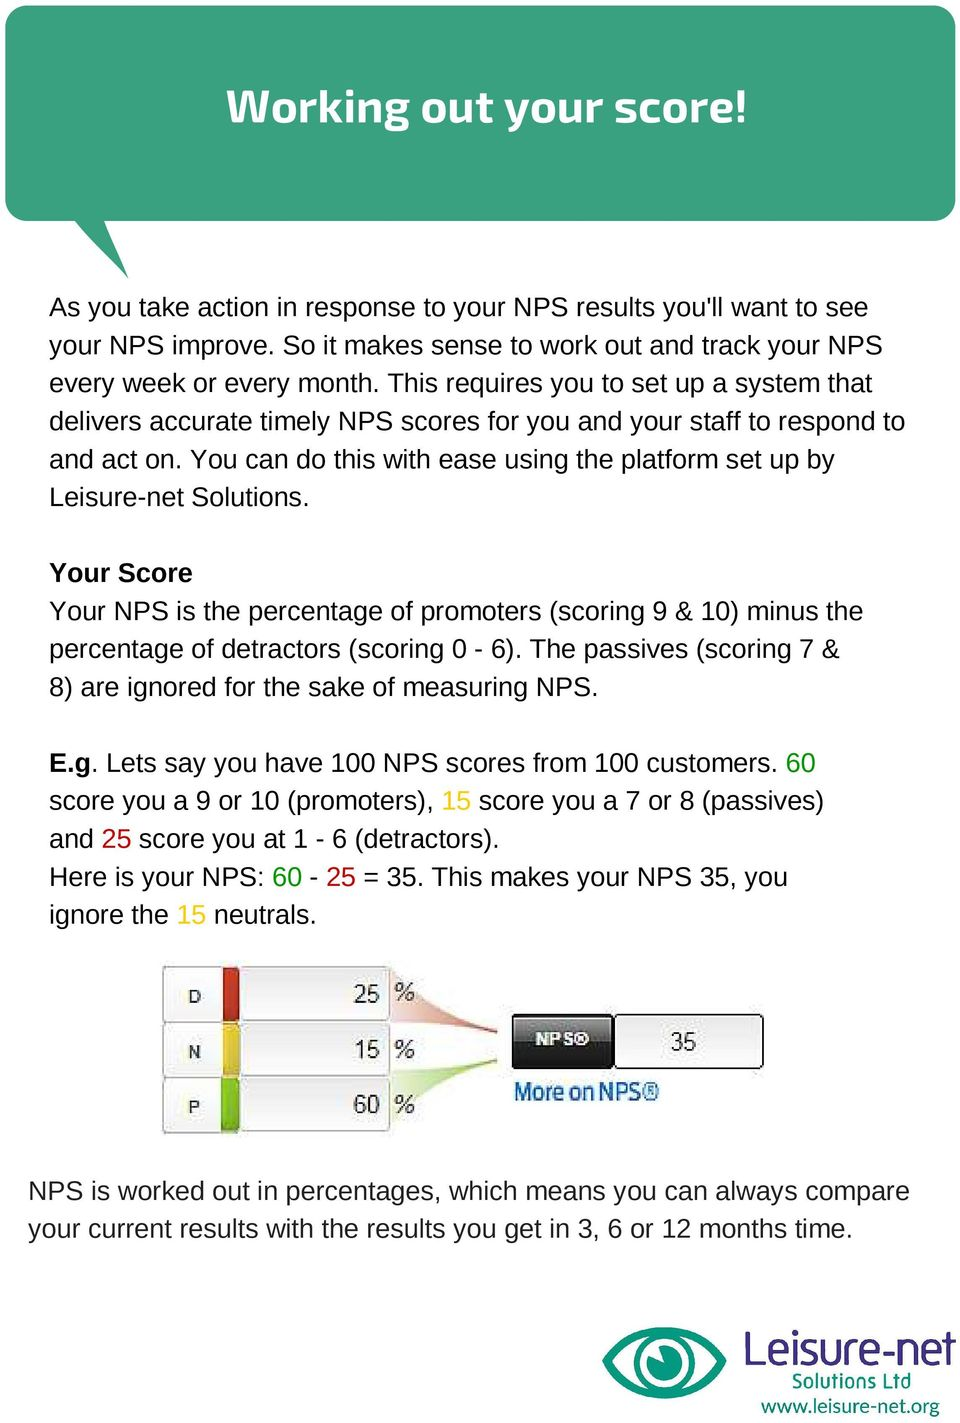 You can do this with ease using the platform set up by Leisure-net Solutions. Your Score Your NPS is the percentage of promoters (scoring 9 & 10) minus the percentage of detractors (scoring 0-6).